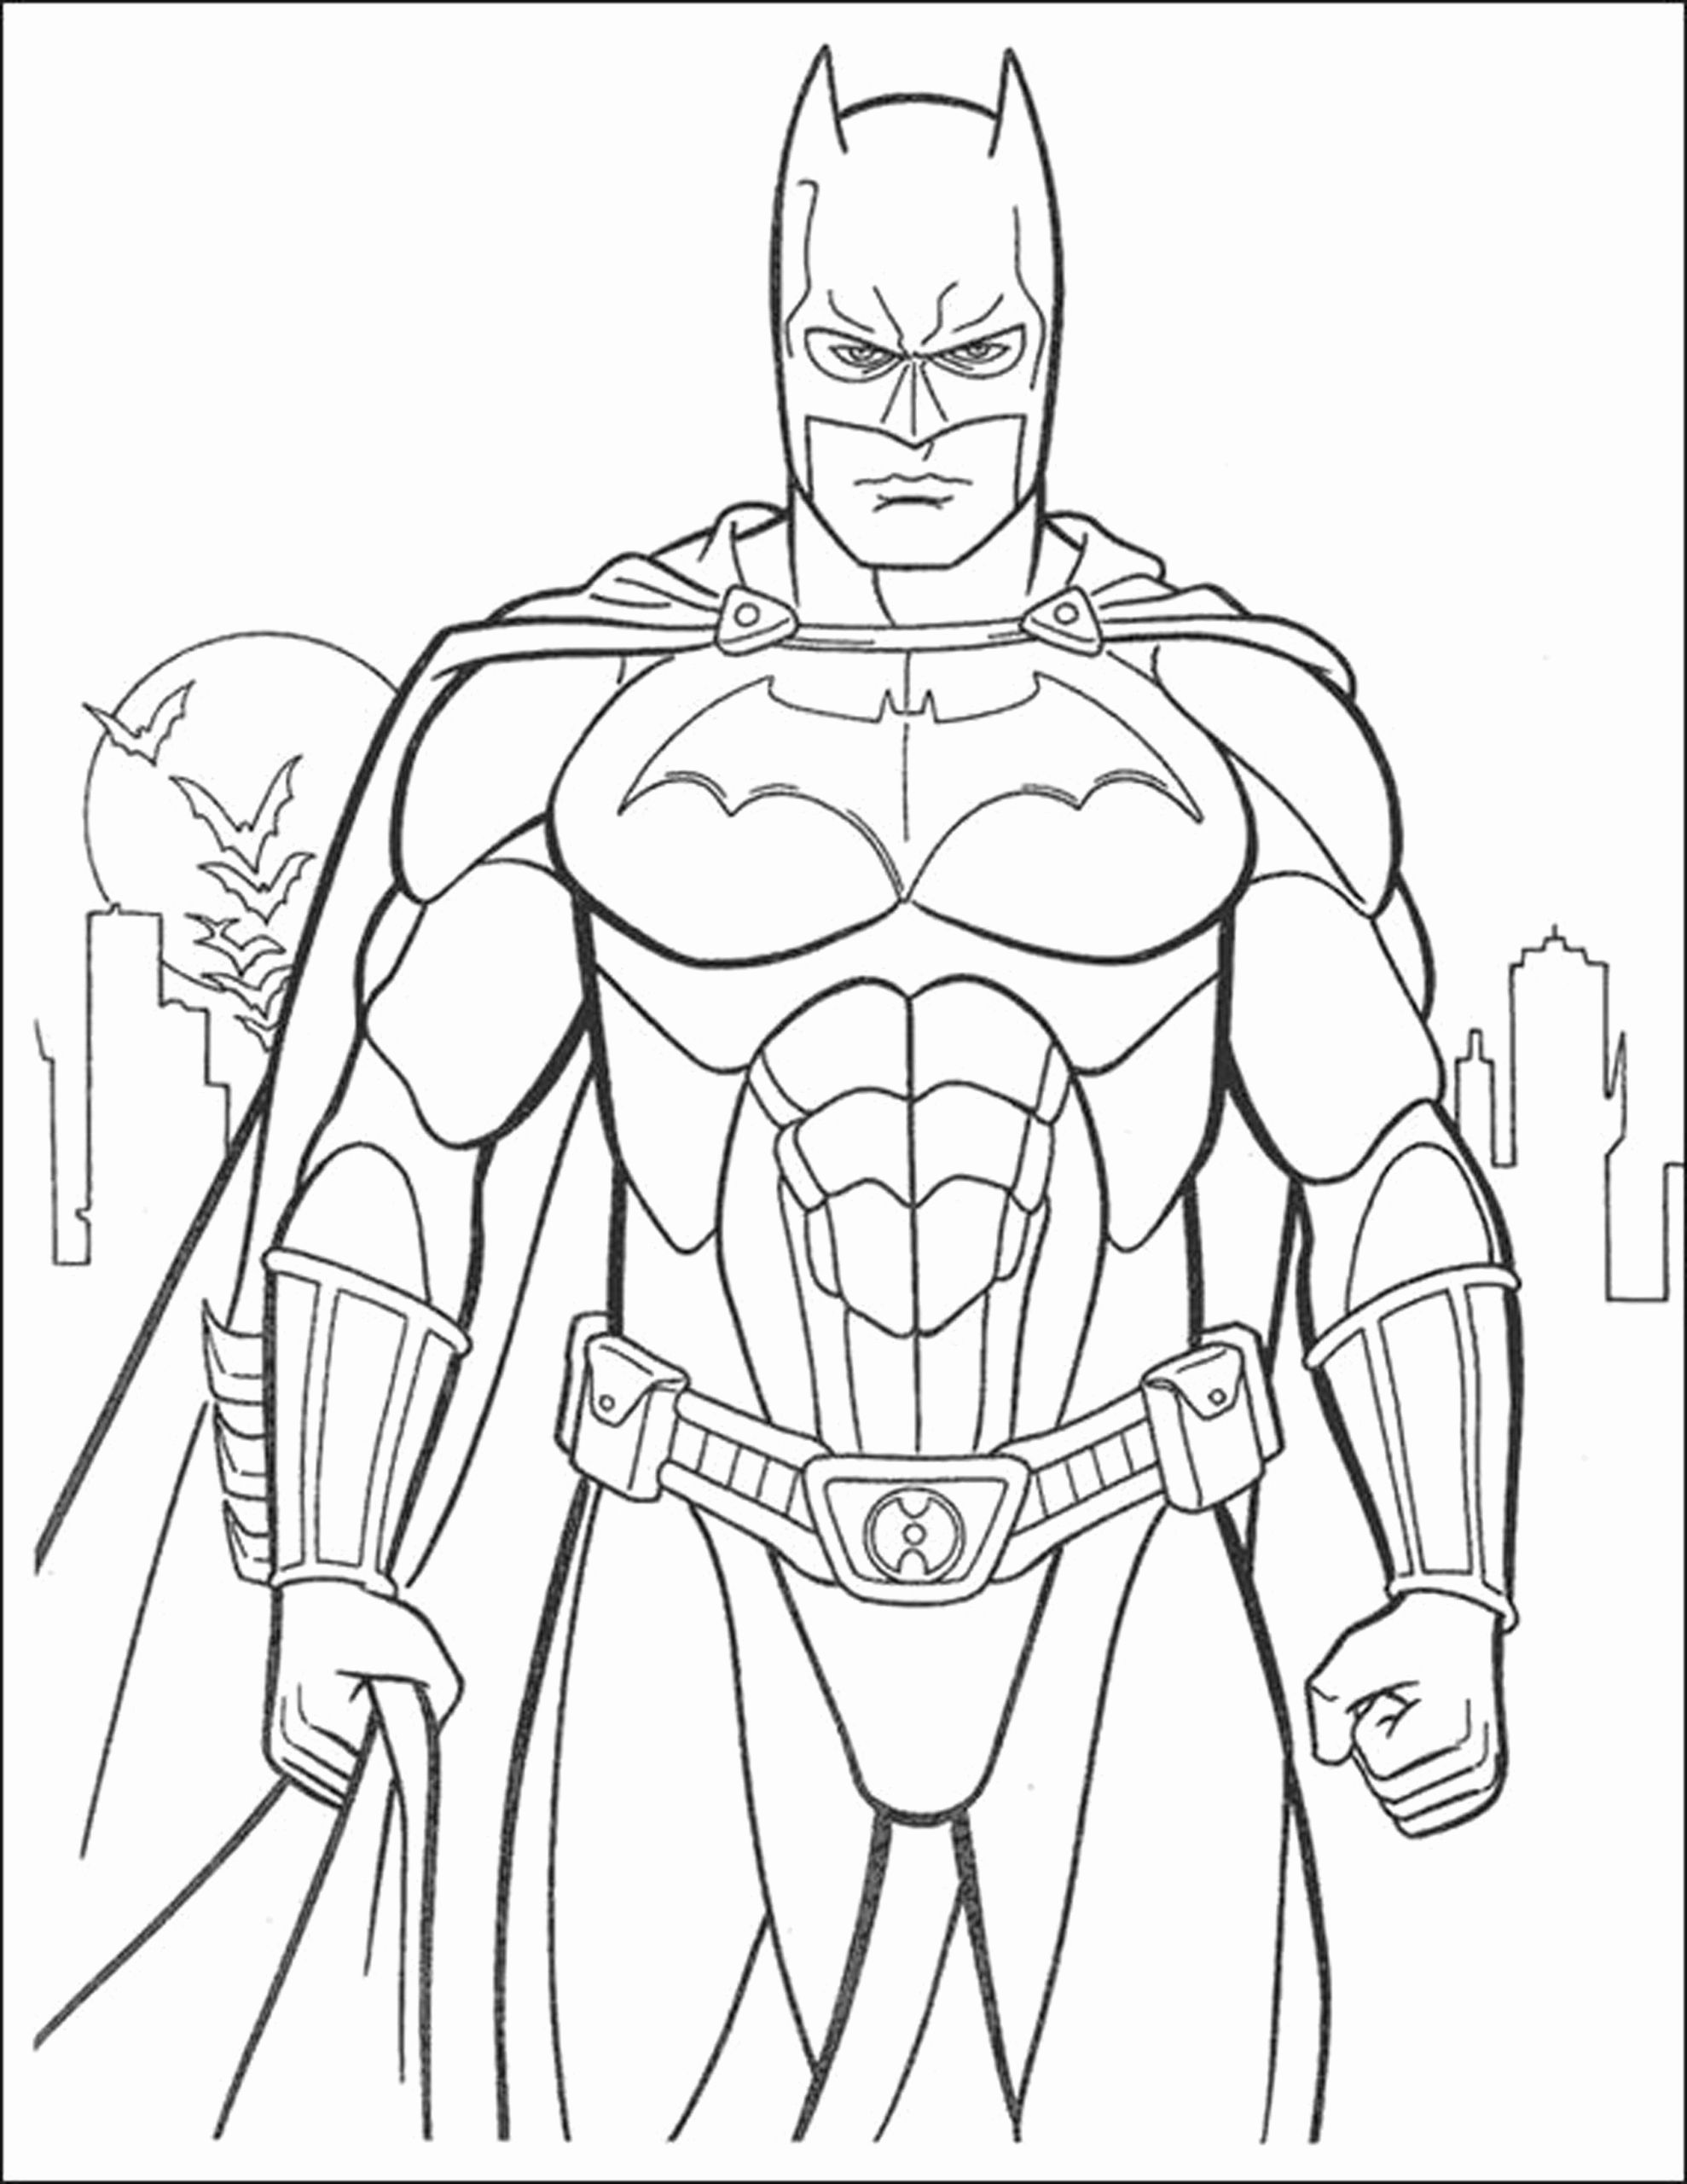 Kids Coloring Pages Batman Vs Superman In 2020 Superhero Coloring Pages Batman Coloring Pages Superhero Coloring